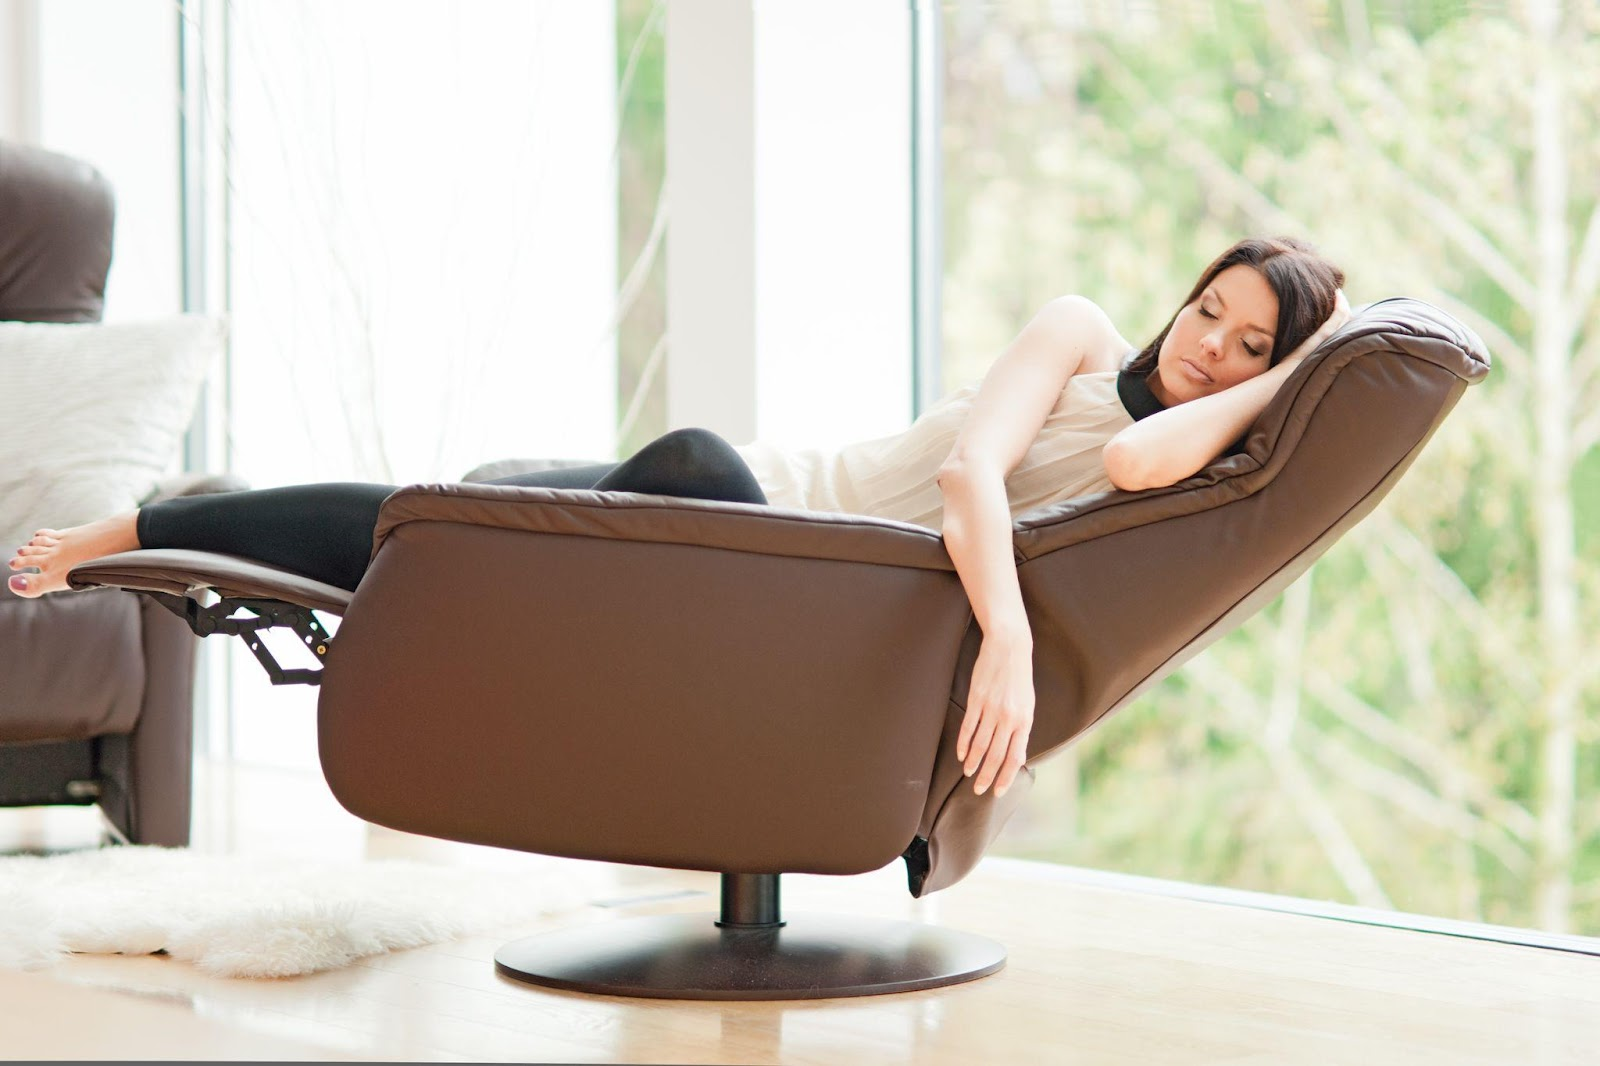 Best 2021 Recliners for Sleeping